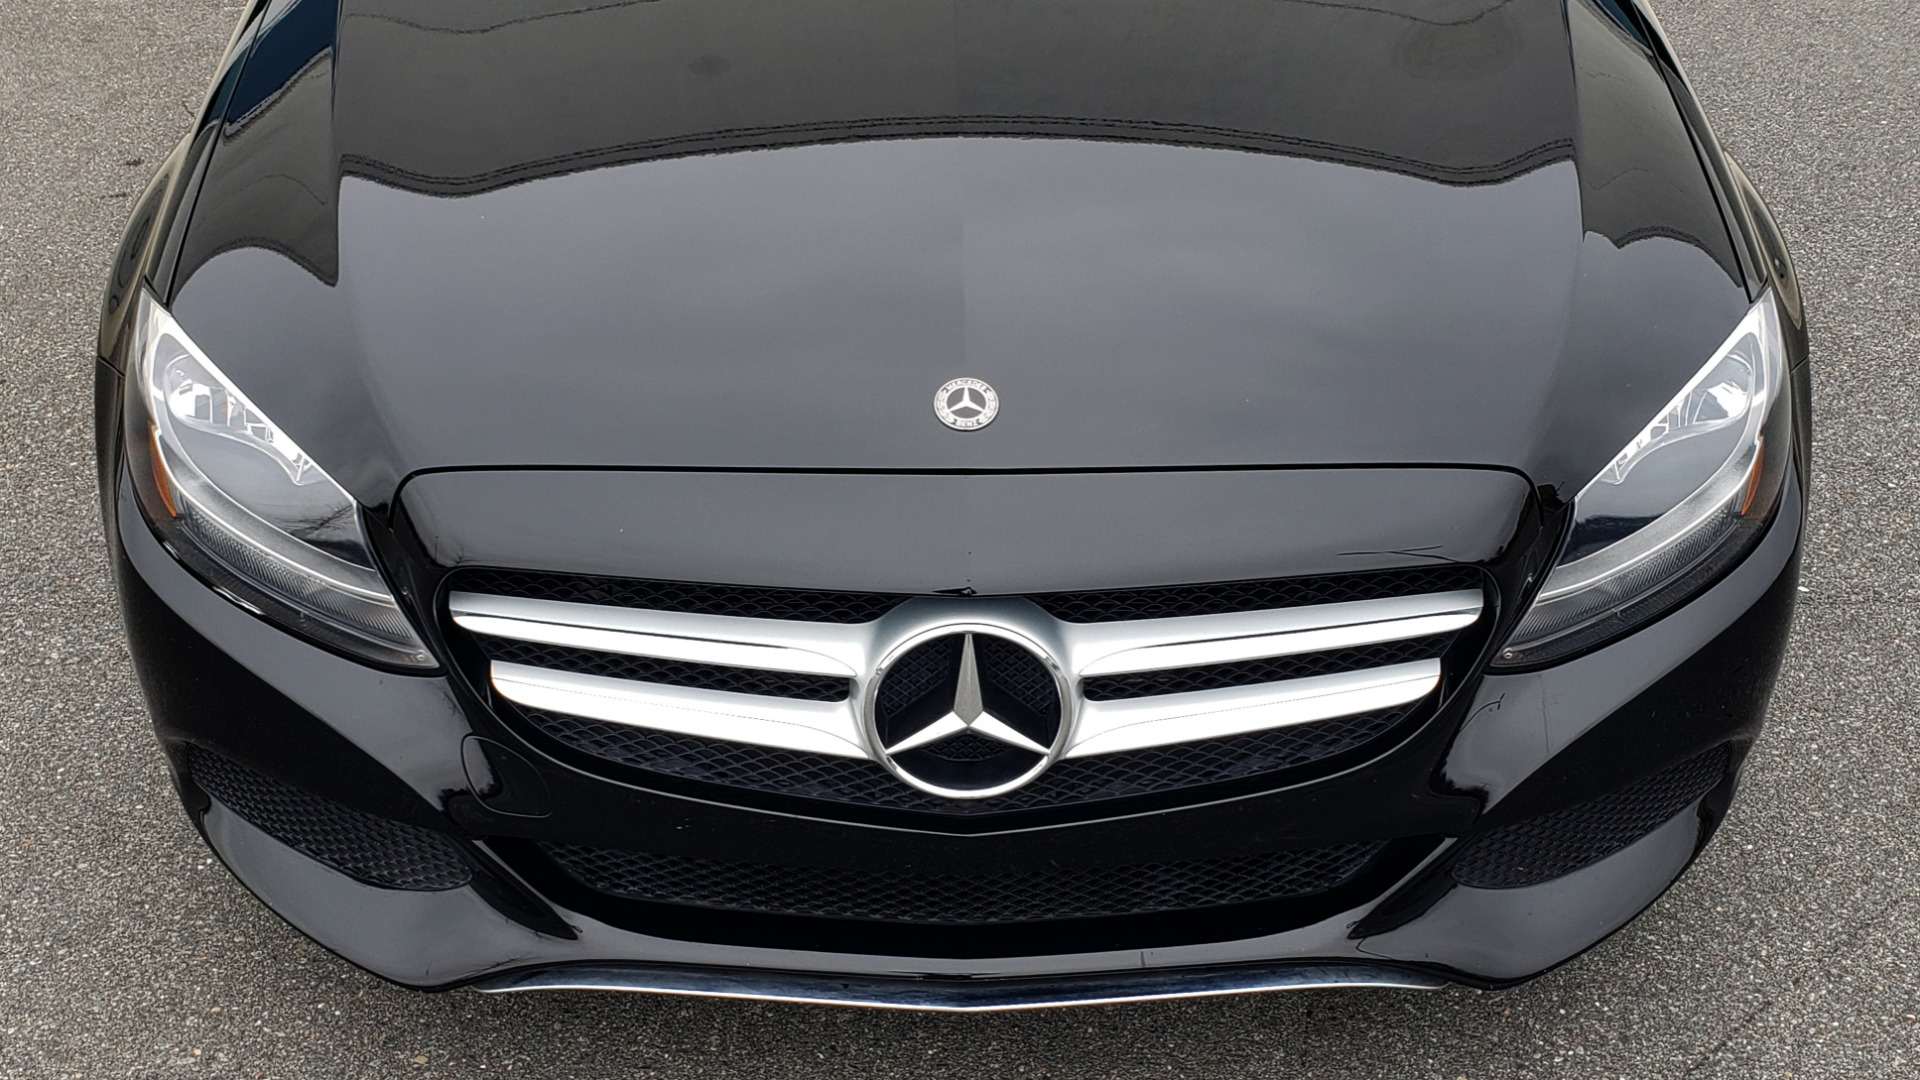 Used 2018 Mercedes-Benz C-CLASS C 300 PREMIUM / 2.0L TURBO / PANO-ROOF / KEYLESS-GO / REARVIEW for sale Sold at Formula Imports in Charlotte NC 28227 79